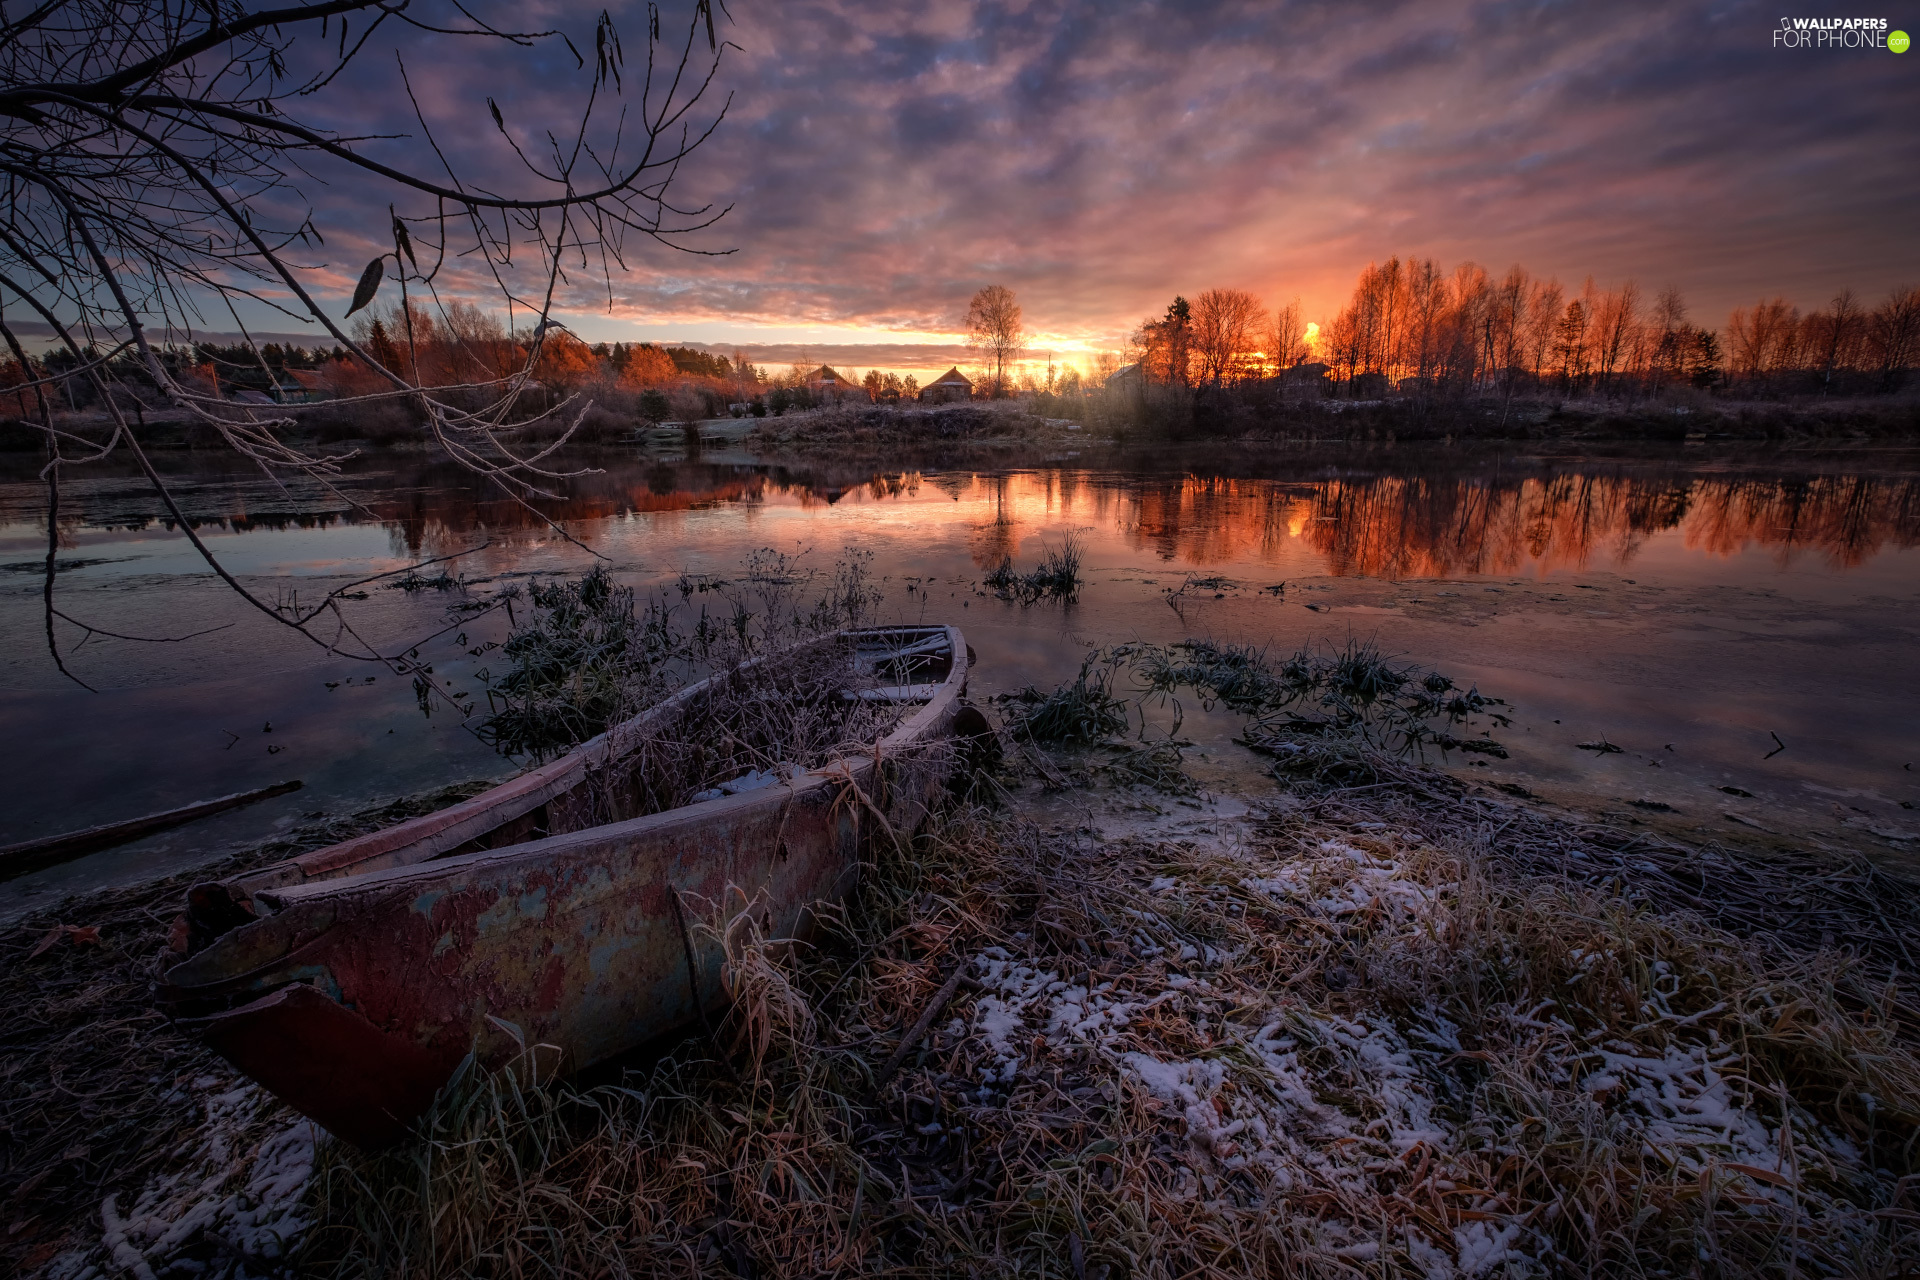 Boat, Dubna River, Great Sunsets, winter, Latgale, Latvia, trees, viewes, Houses